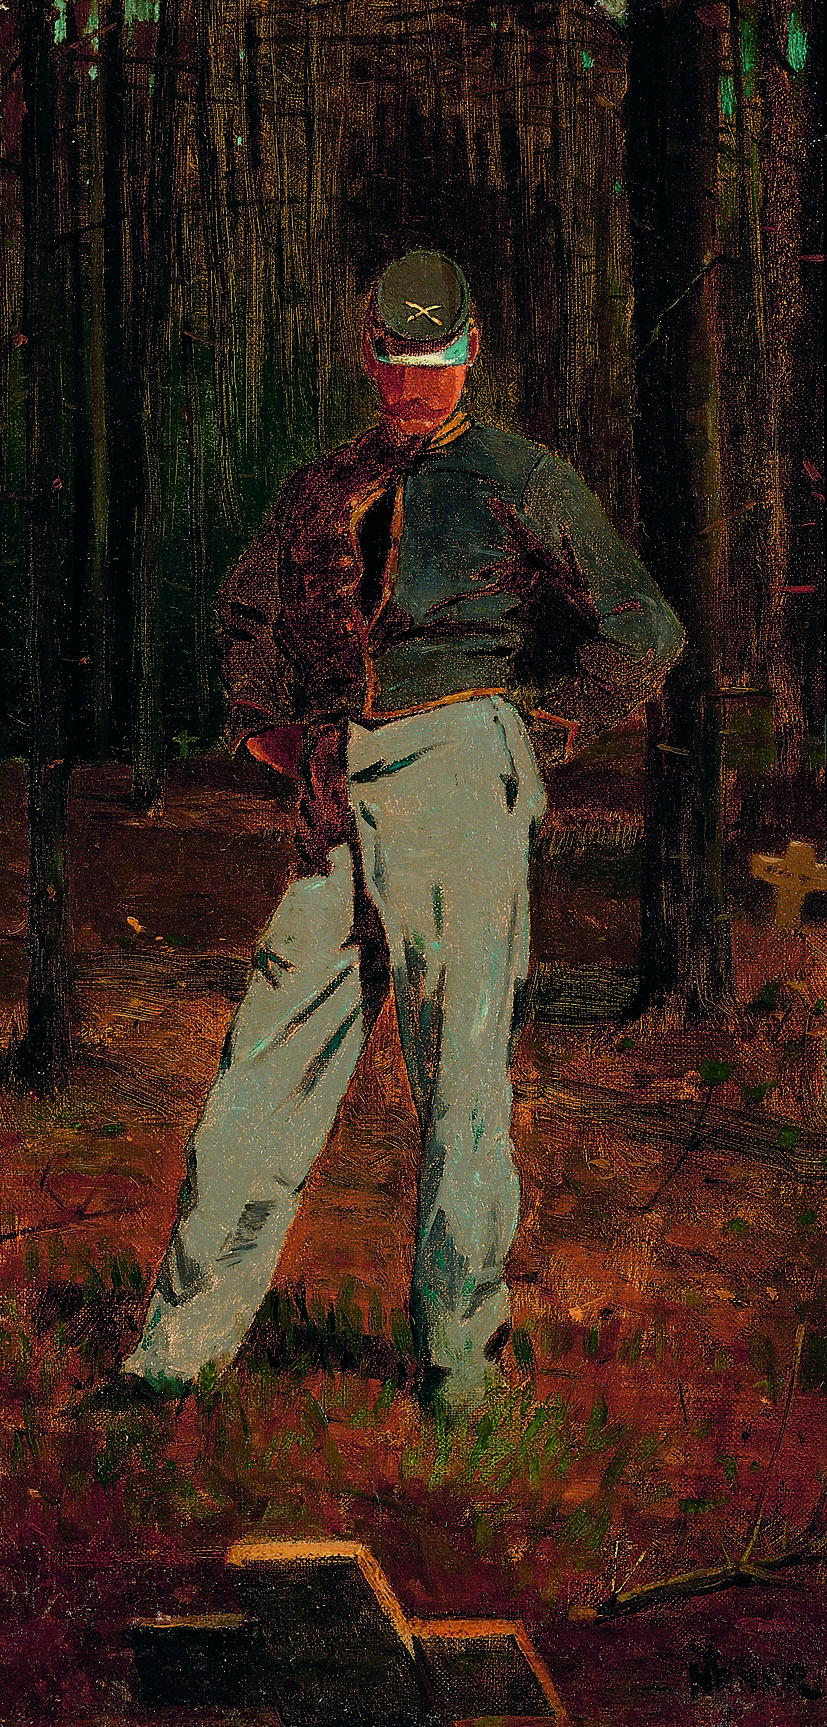 Winslow Homer (American, 1836-1910), Trooper Meditating Beside a Grave, c. 1865, oil on canvas, 16 x 8 inches. Joslyn Museum, Omaha, Nebraska. Gift of Dr. Harold Gifford and Ann Gifford Forbes, 1960.298